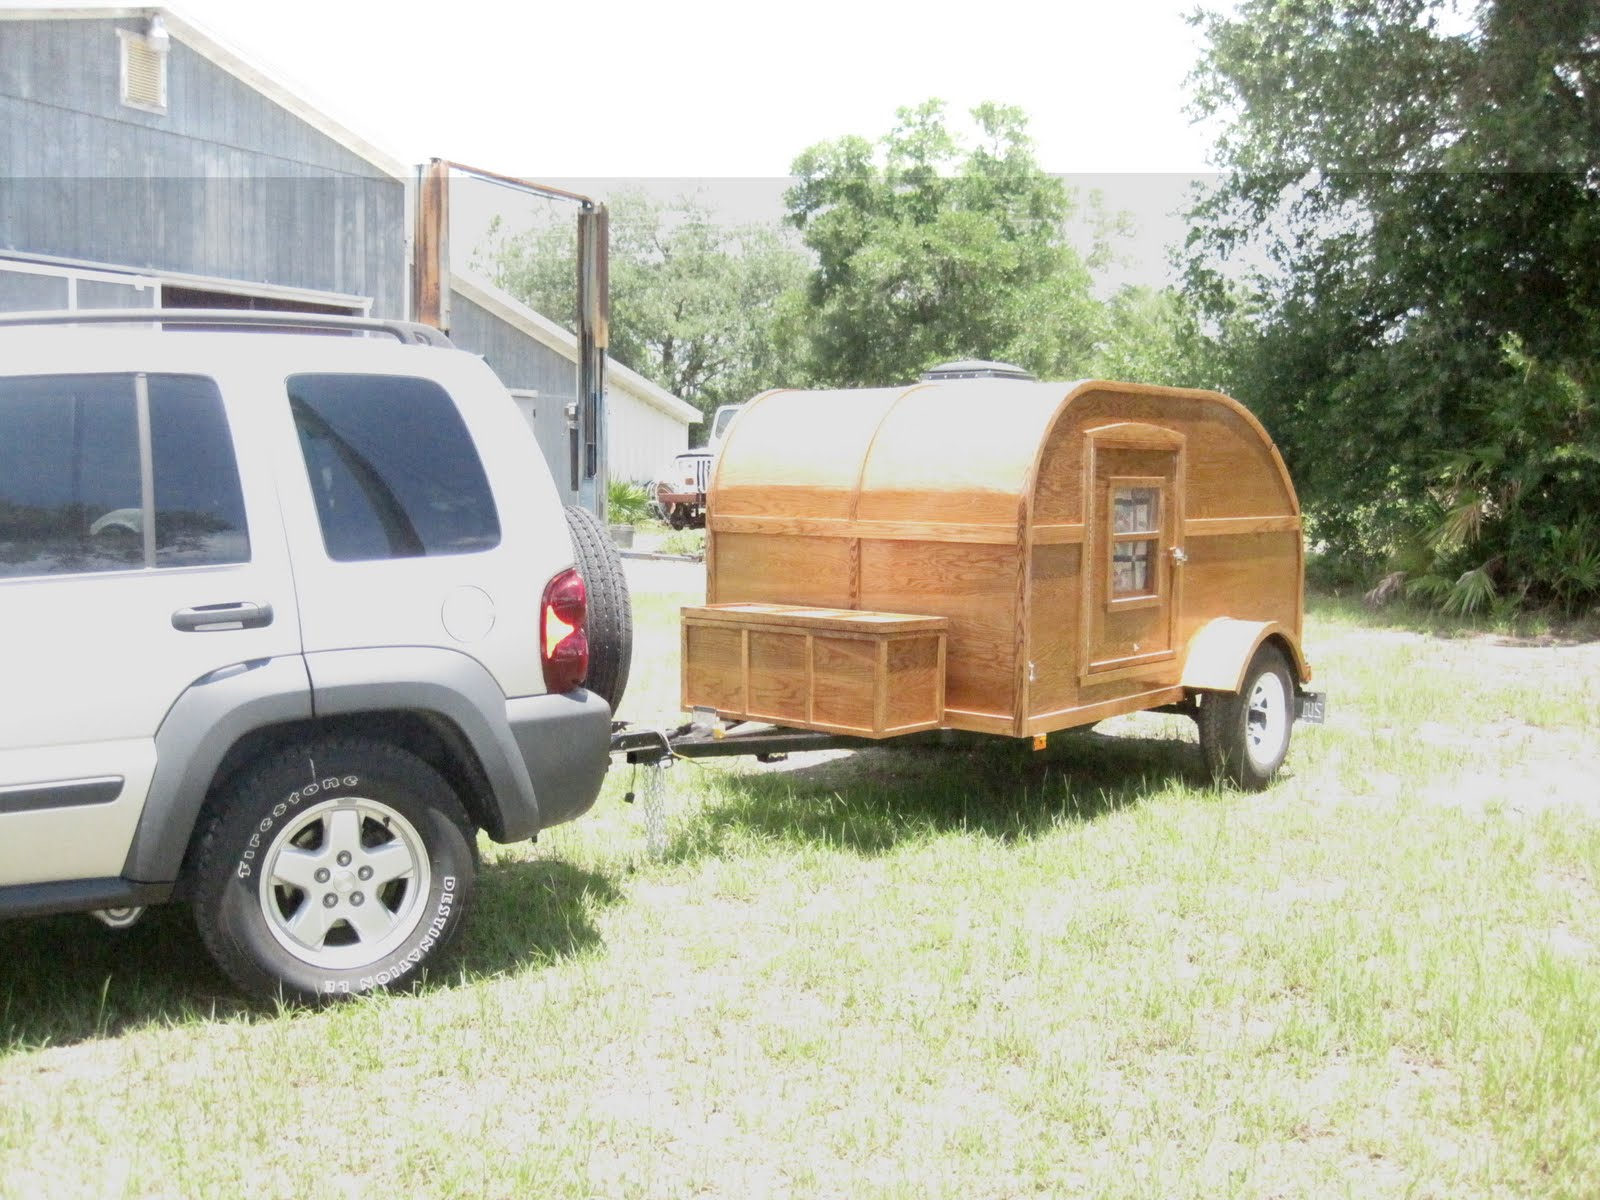 Teardrop (Tear Drop) Trailer - Florida (Building and Traveling with our Woodie Teardrop)